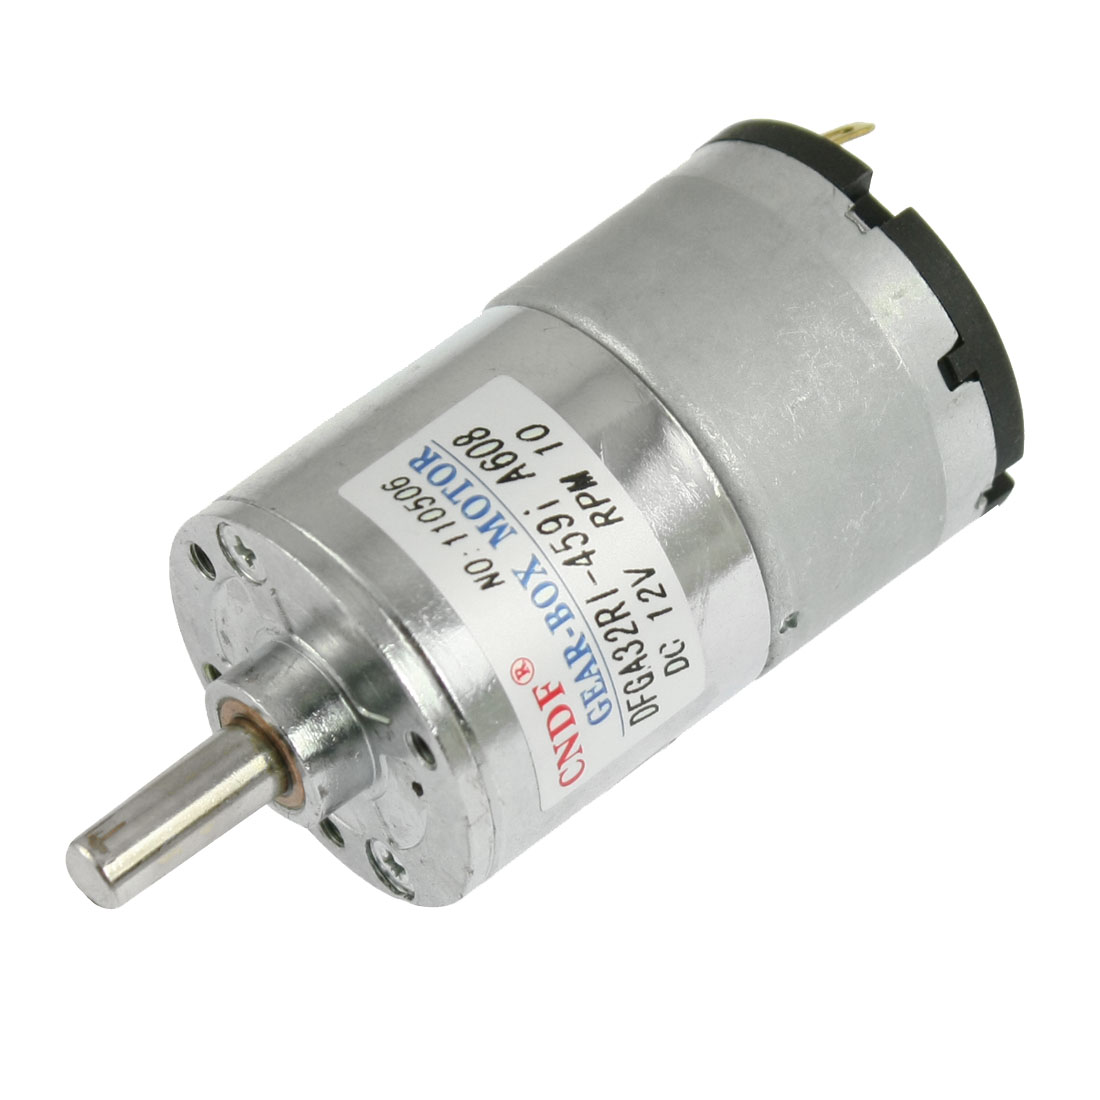 8-26kg-cm-Torque-6mm-Shaft-33mm-Dia-Magnetic-DC-Geared-Motor-10RPM-50mA-12V